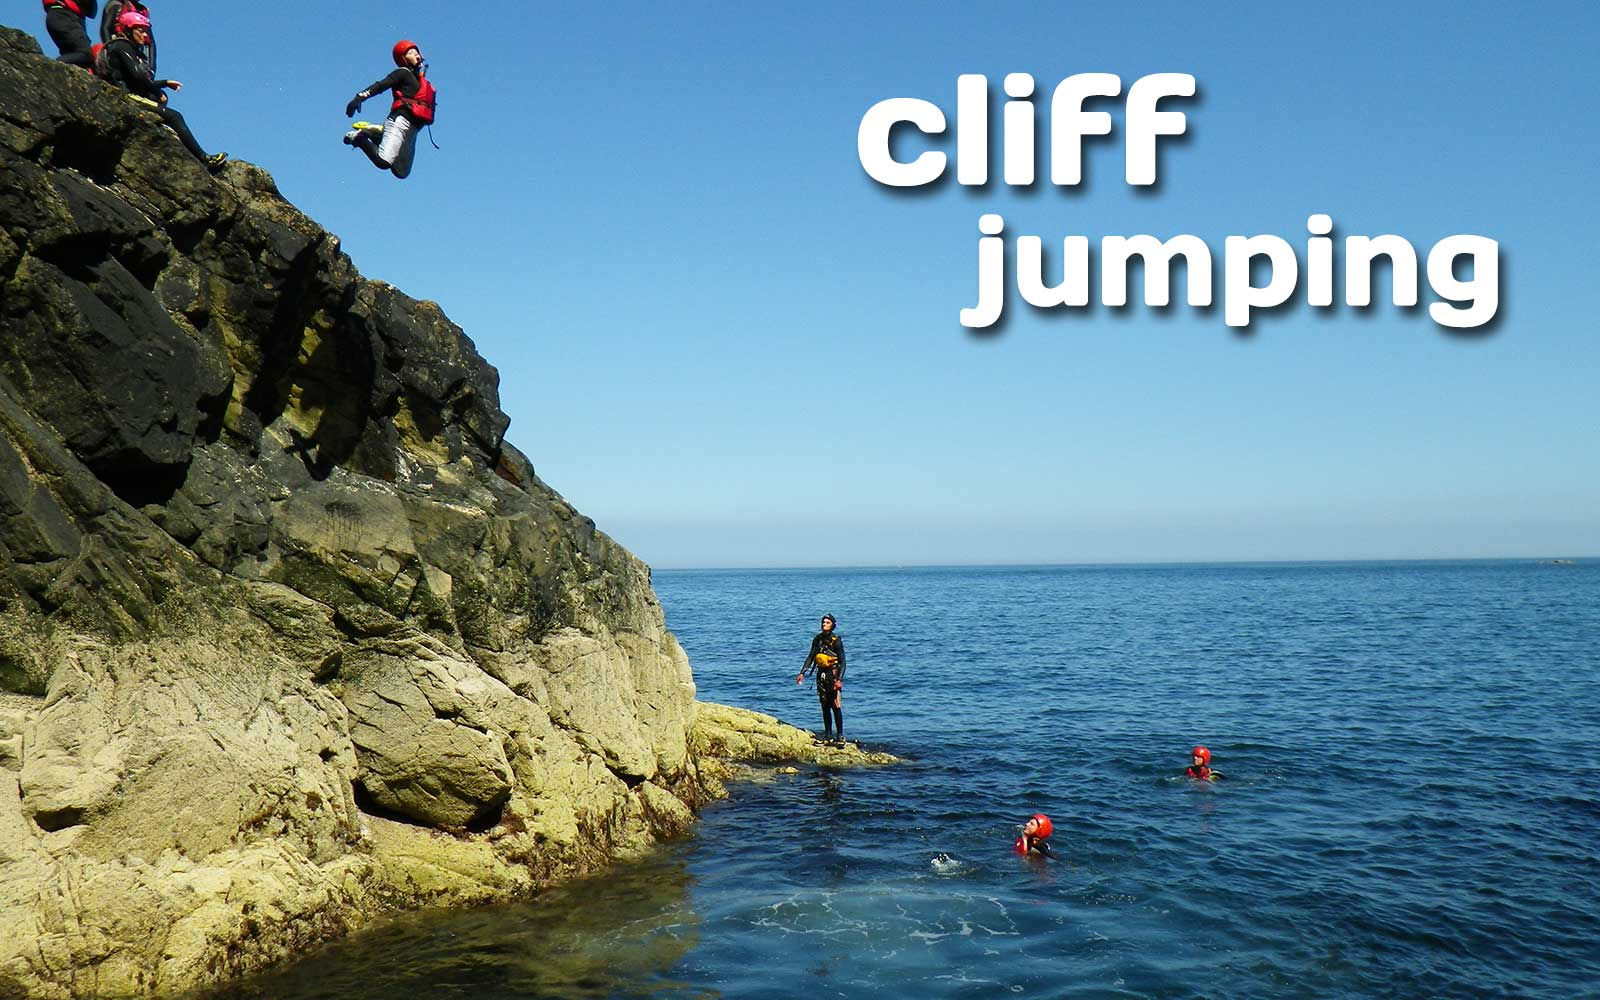 Coasteering cliff jumping, teenager leaping from the headland at Abereiddy bay, Pembrokeshire Wales